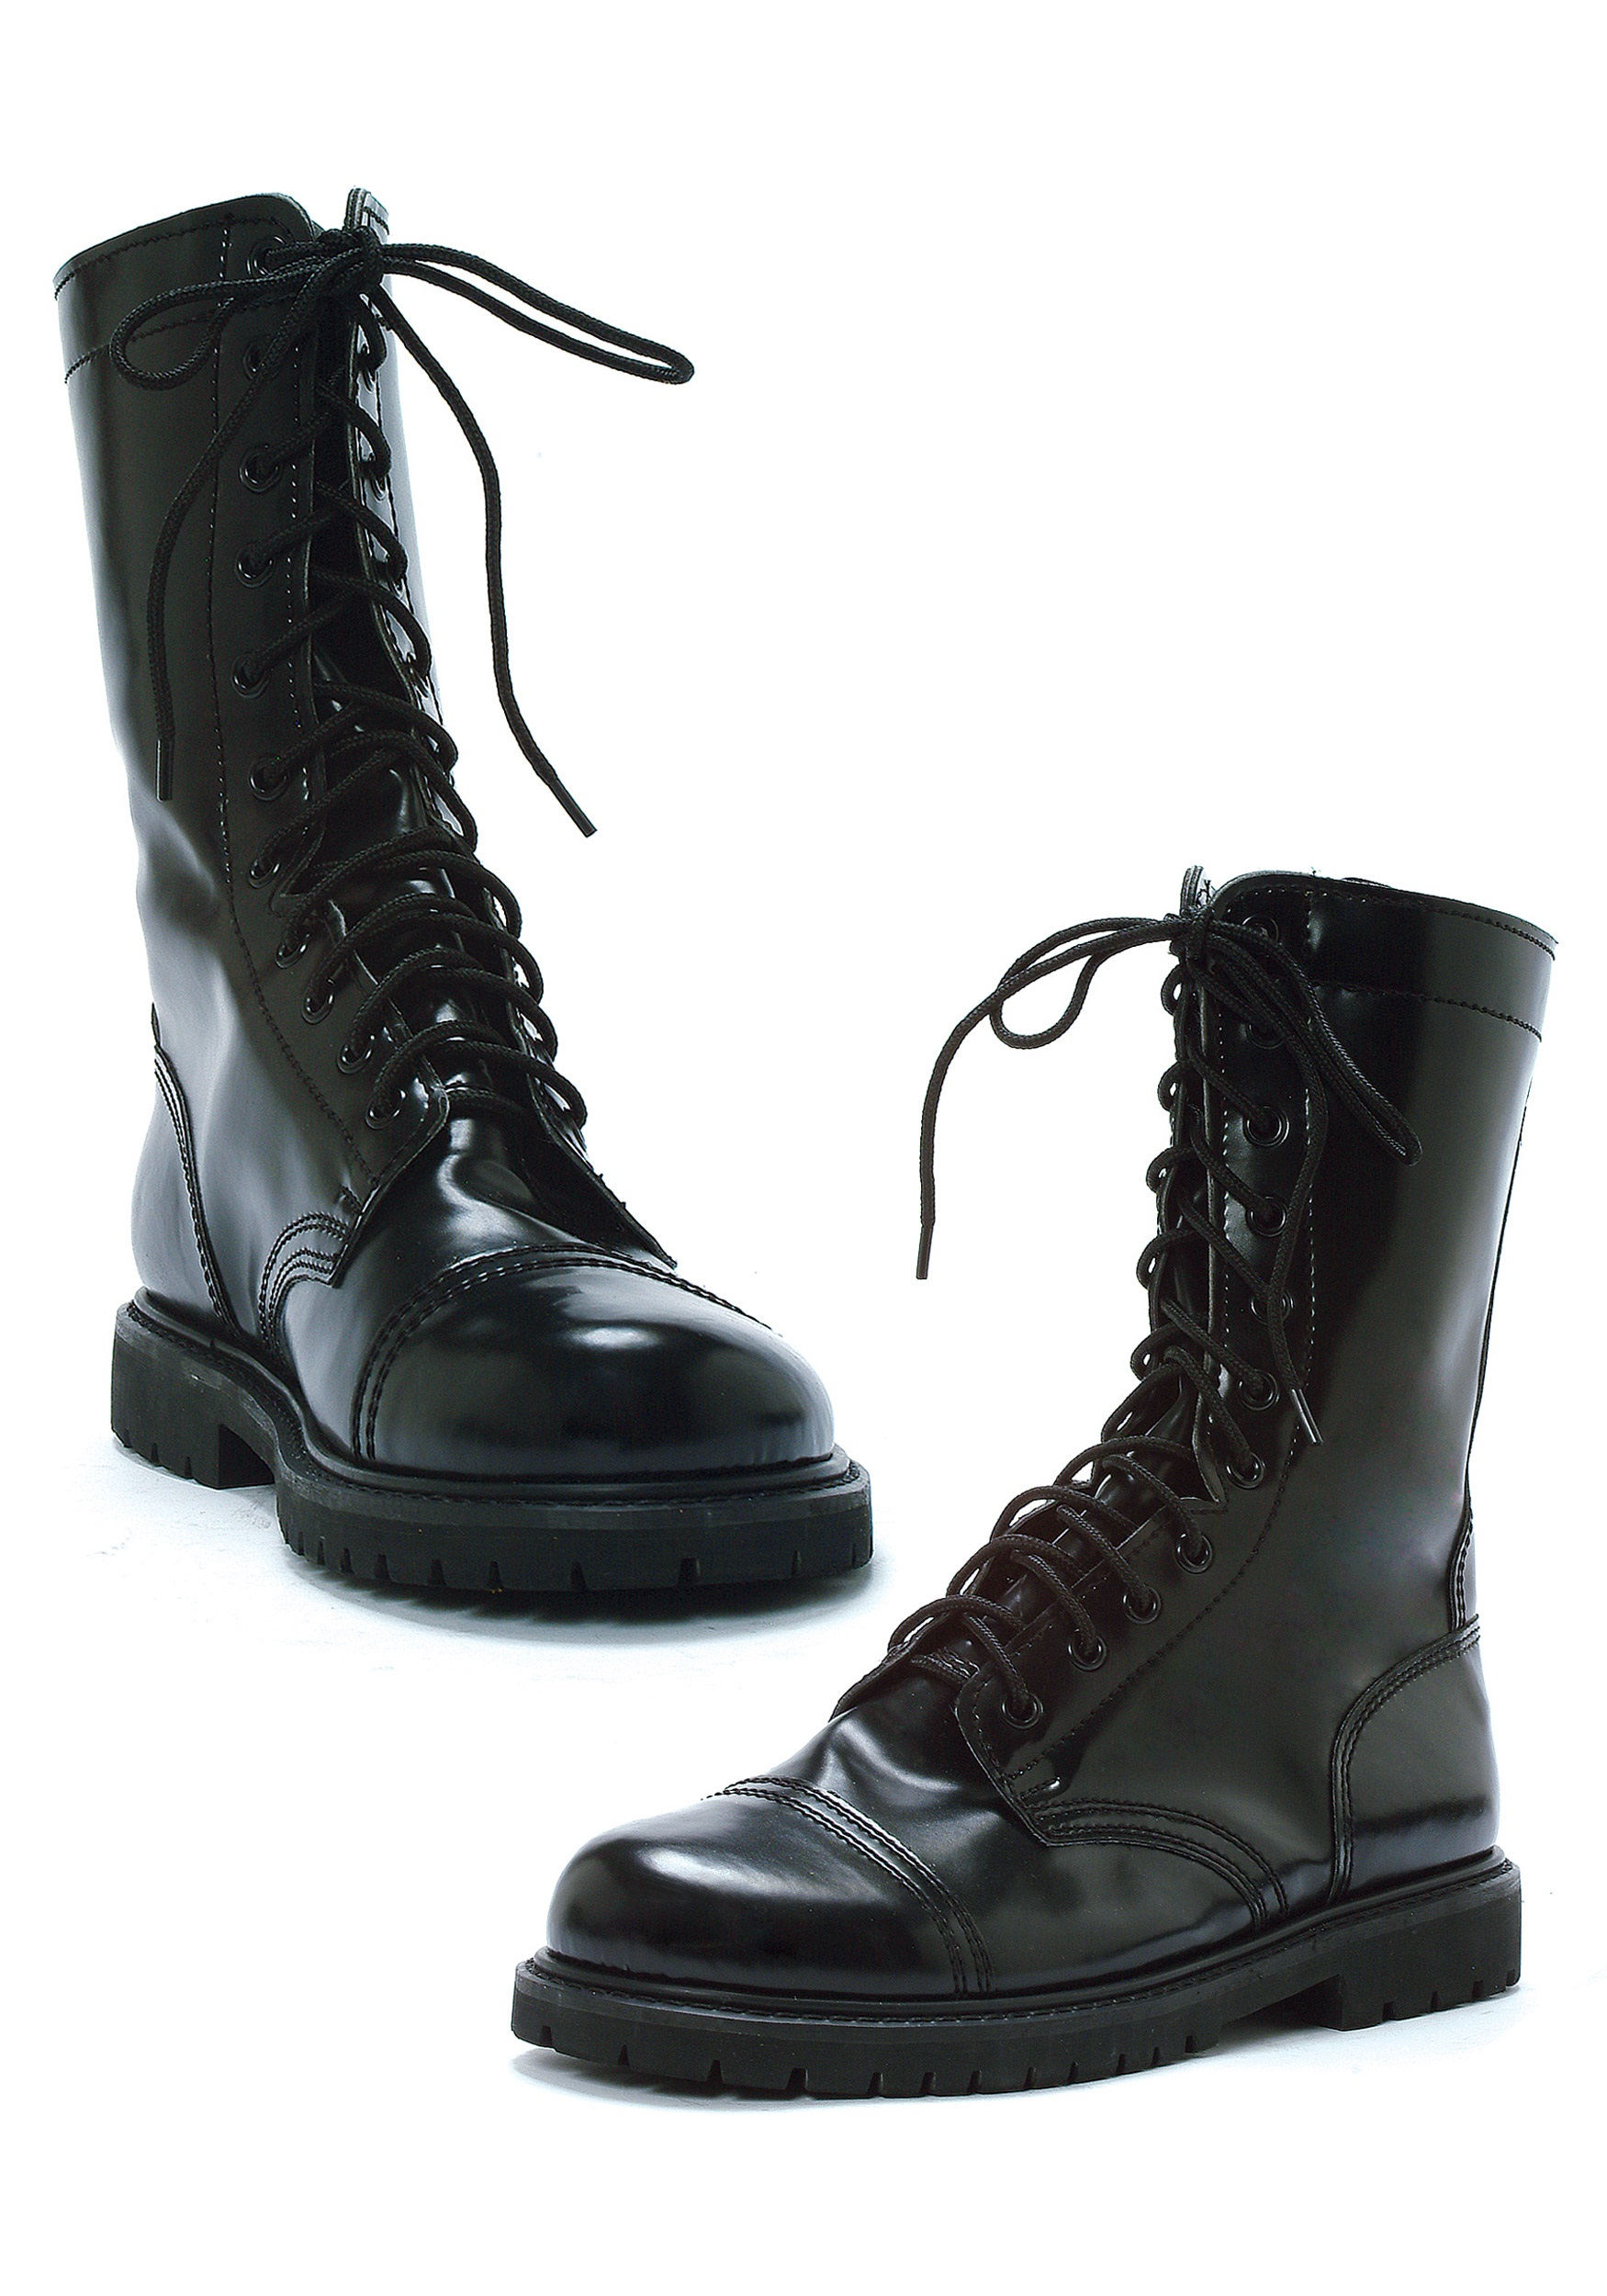 Where to buy combat boots Online shoes for women